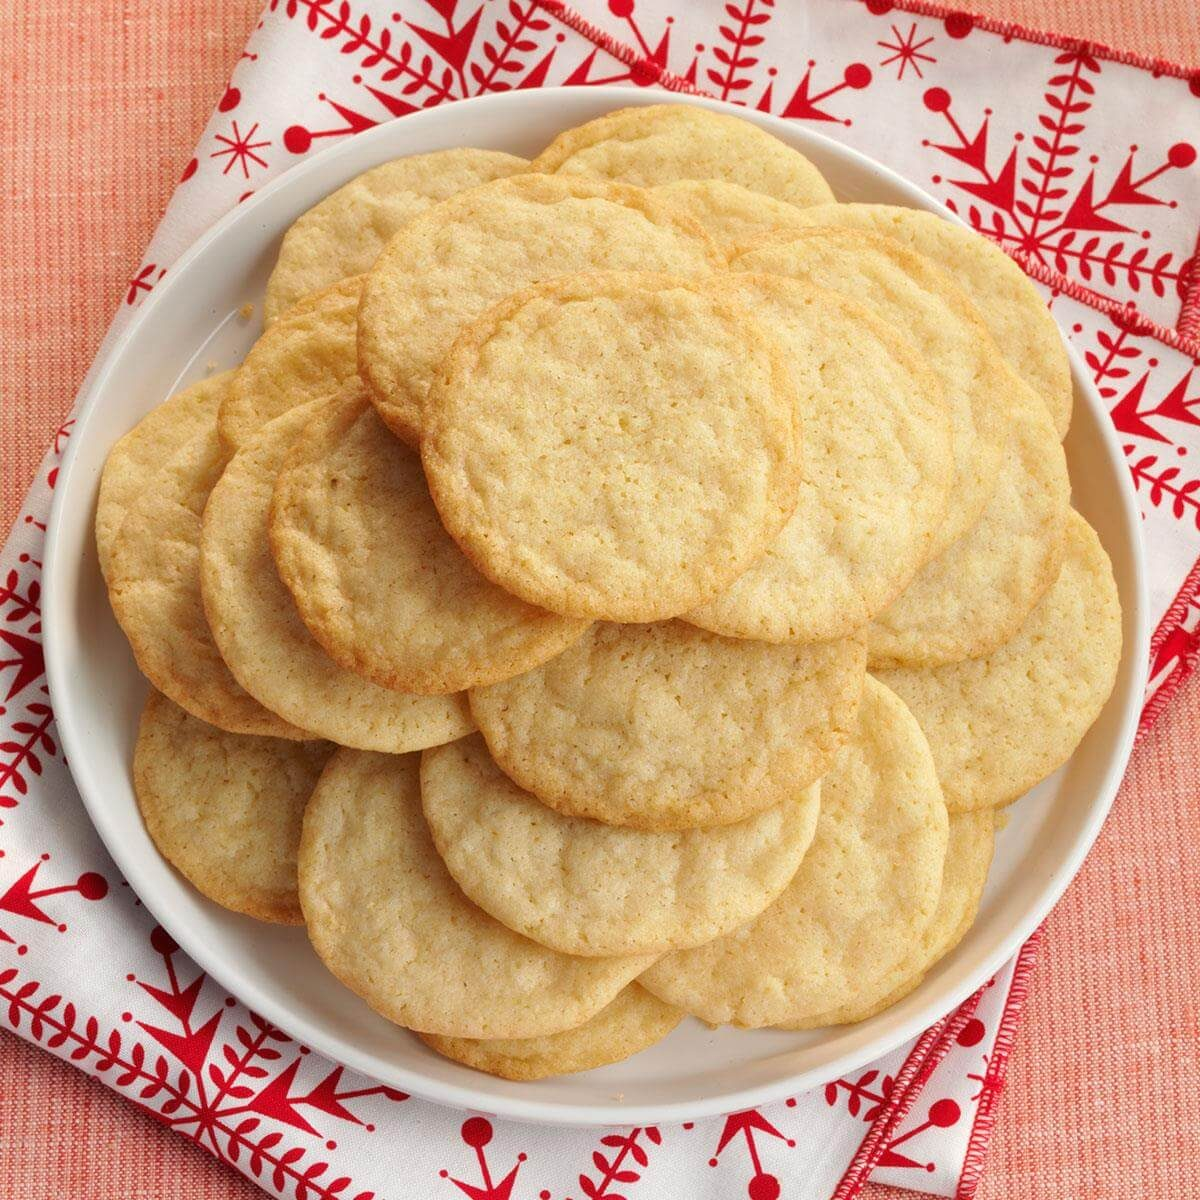 30 Classic Cookies from Vintage Church Cookbooks